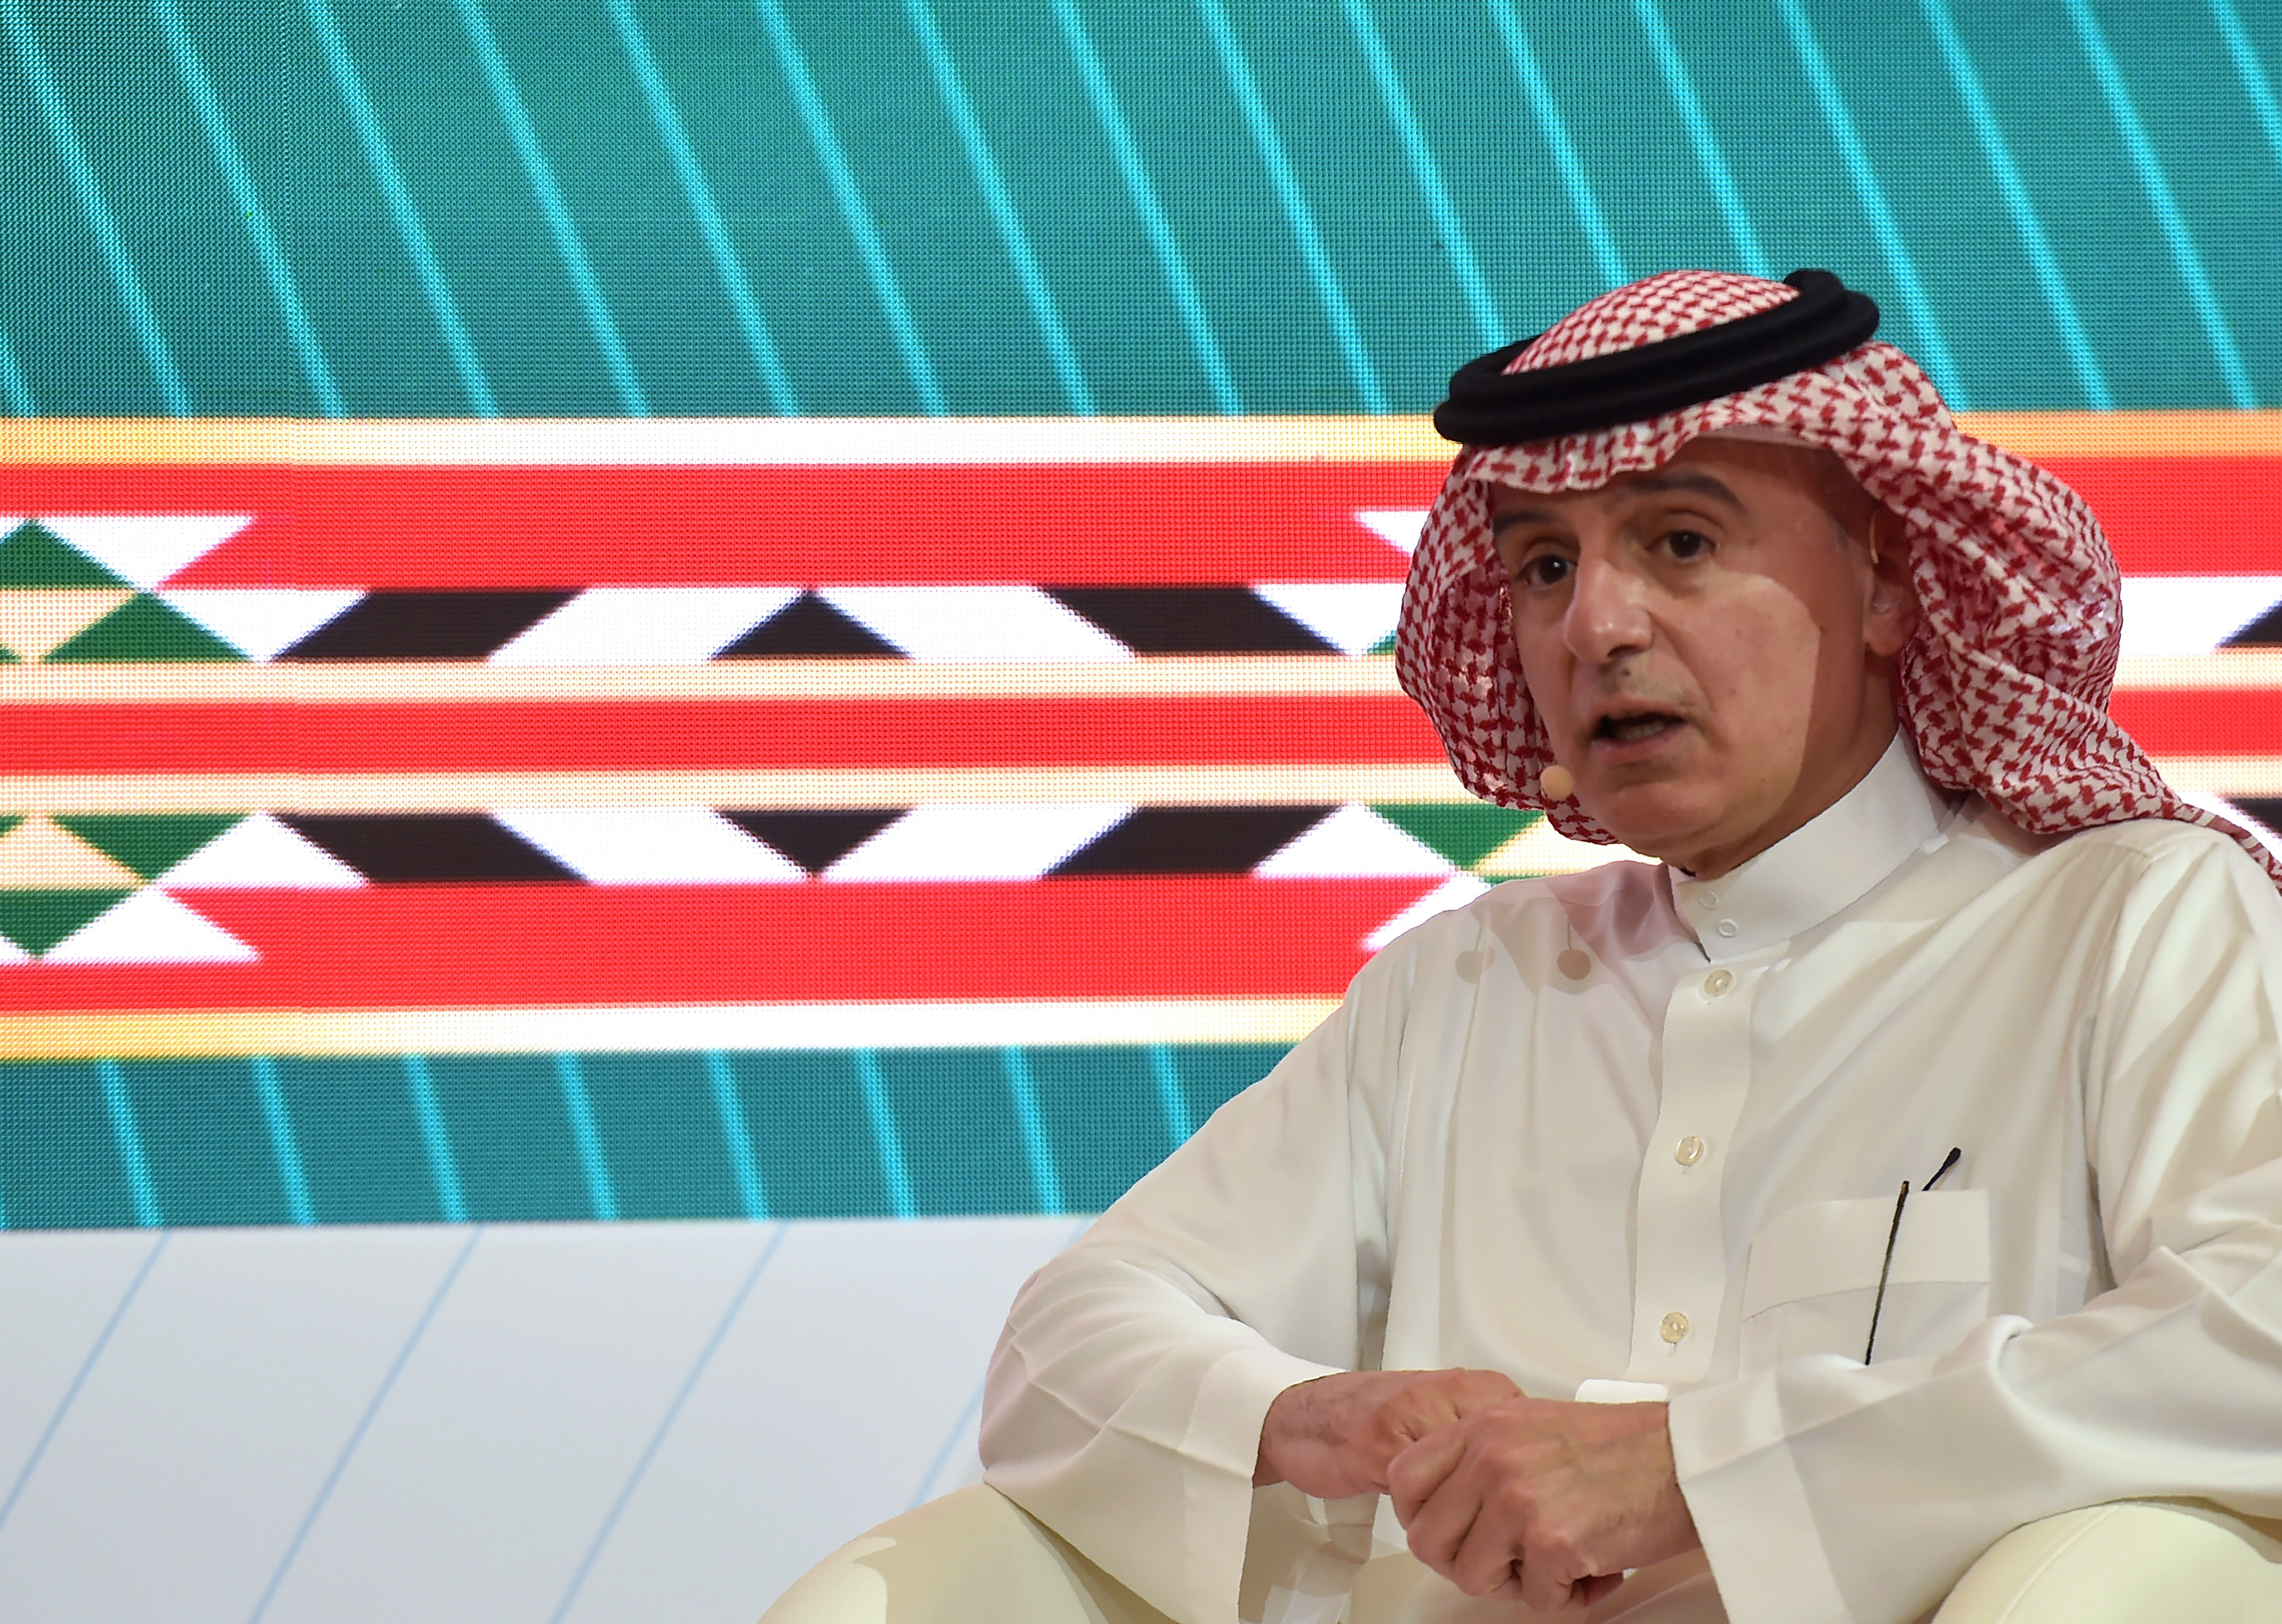 Saudi diplomat ridiculed for claiming Riyadh doesn't 'engage in assassinations'